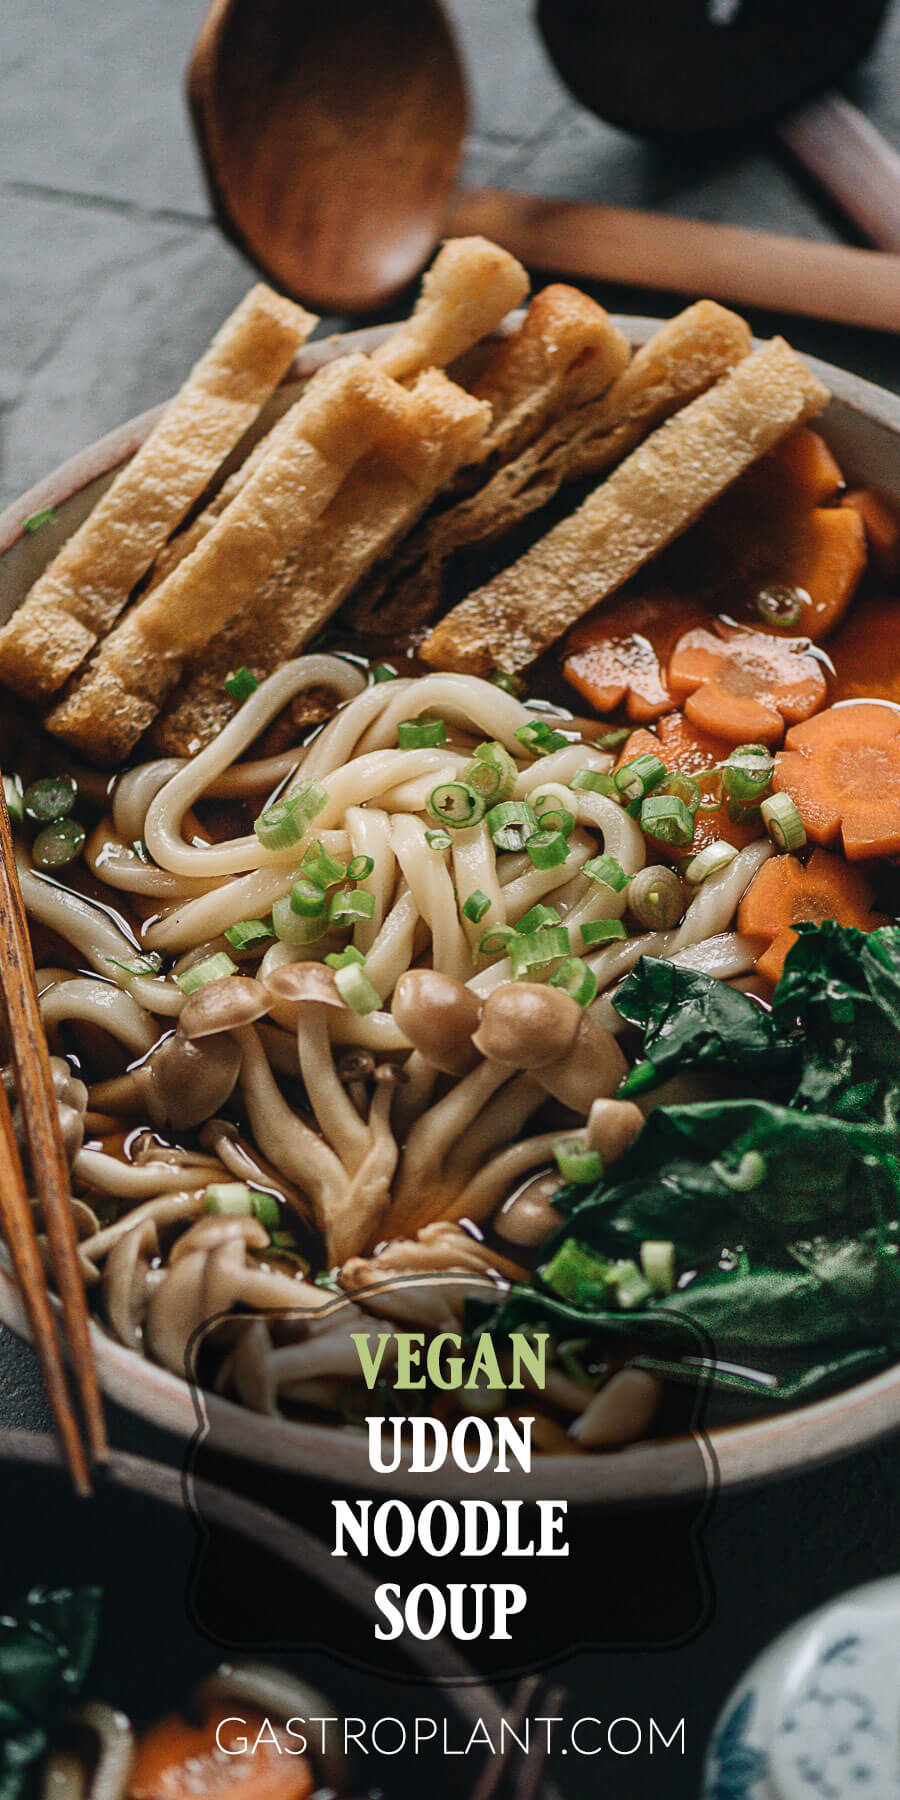 Collage for umami vegan udon noodle soup